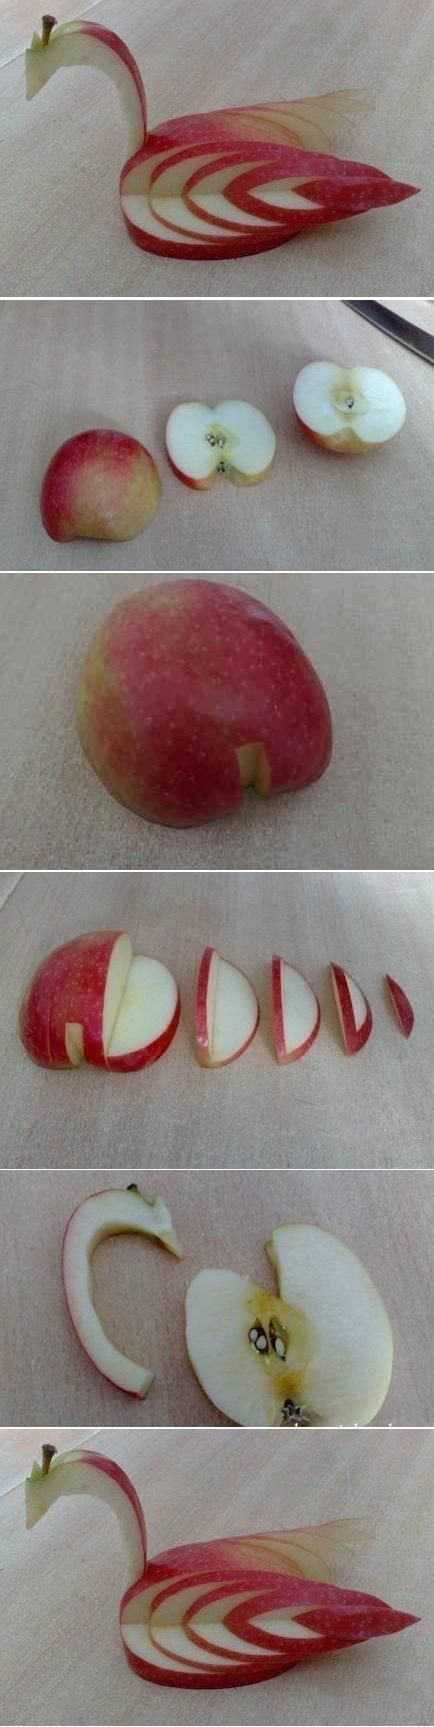 DIY Apple Swan